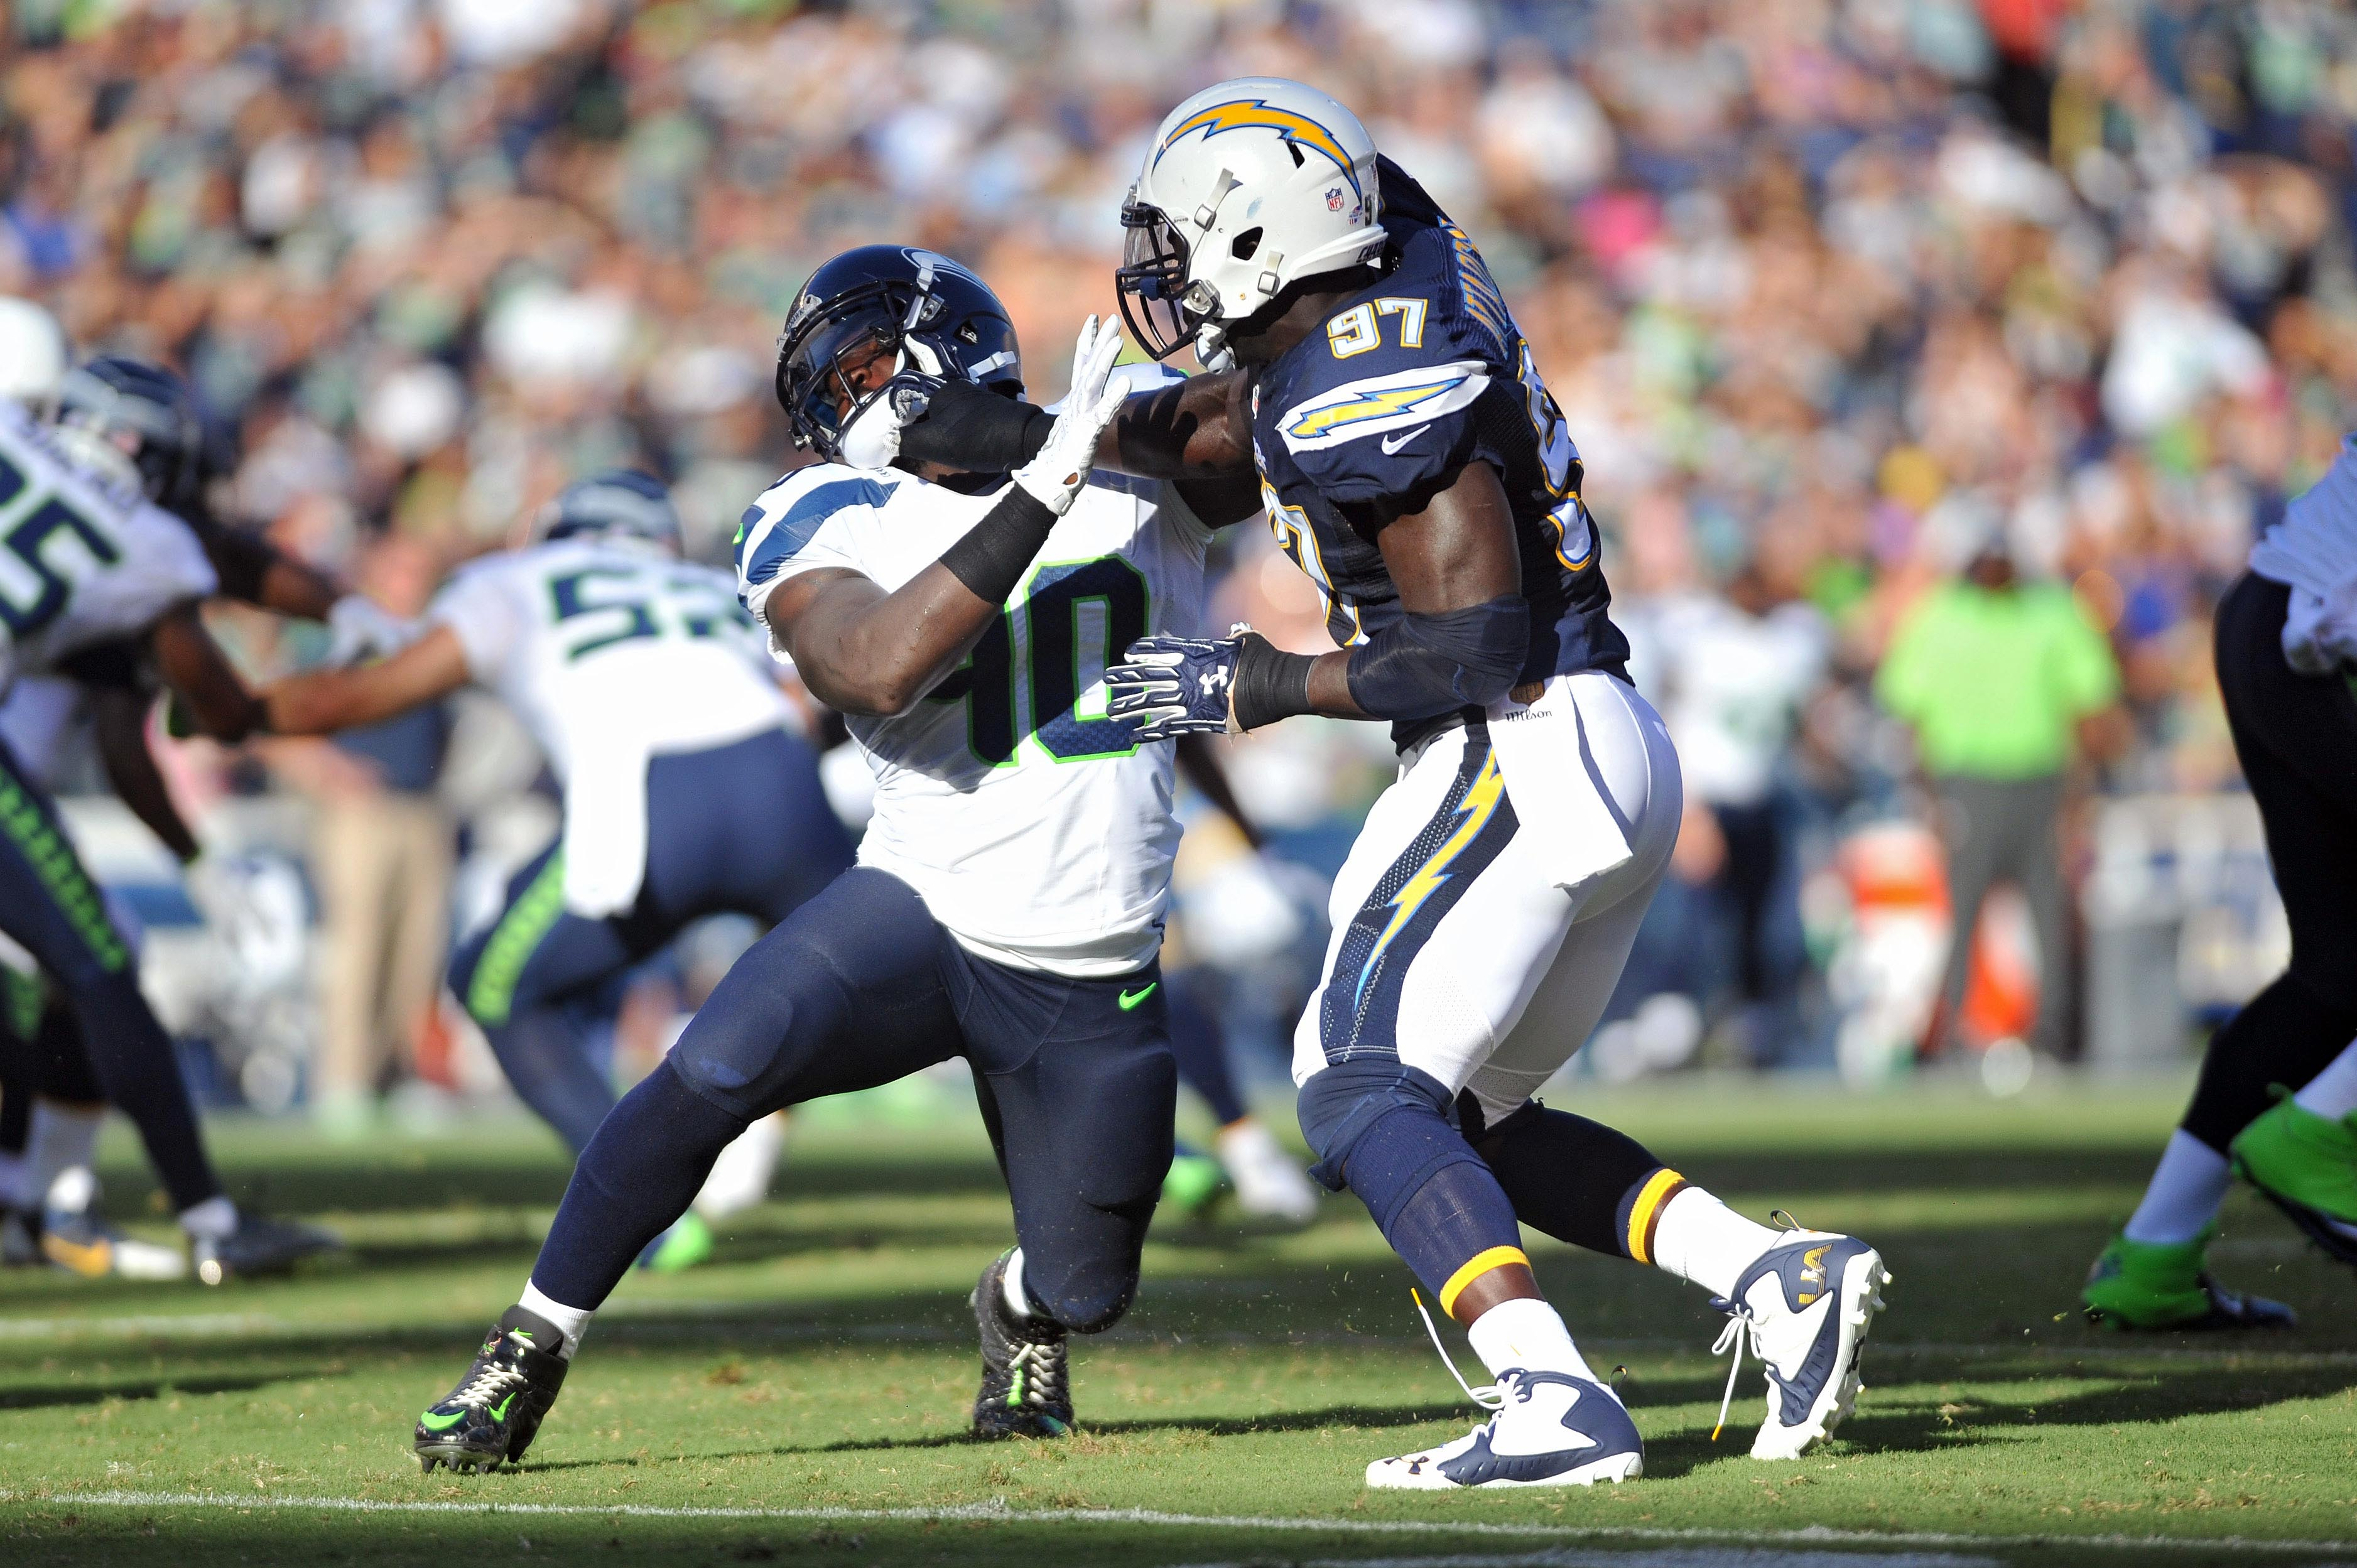 8770941-nfl-preseason-seattle-seahawks-at-san-diego-chargers